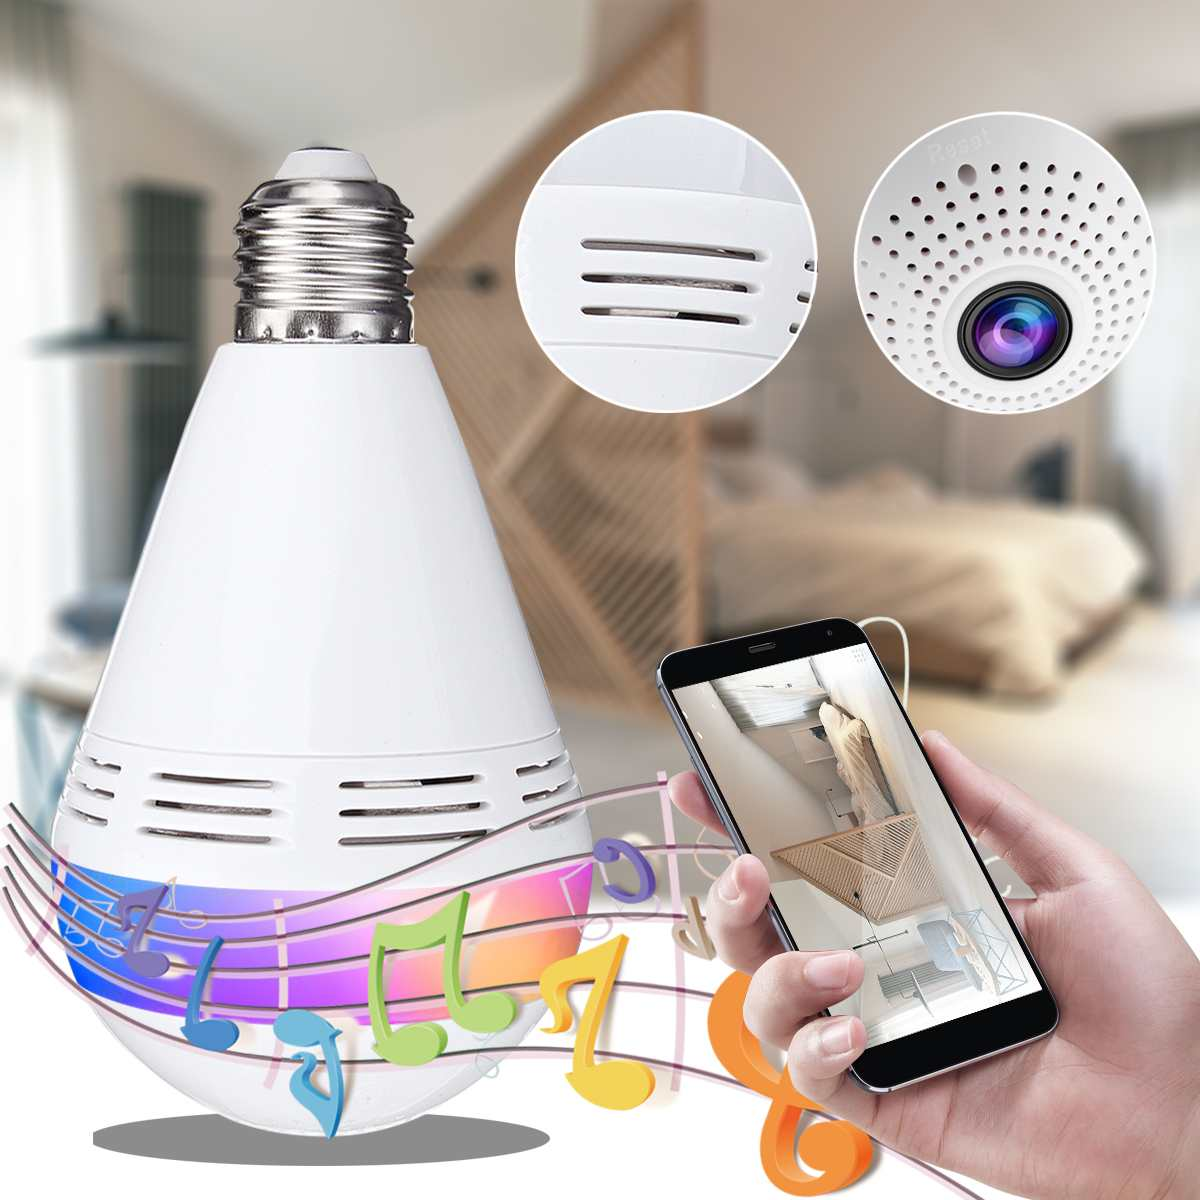 E27 Wireless bluetooth Speaker Bulb Music Playing Dimmable LED Lamp Light Bulb IP Camera Wifi FishEye CCTV Home Security Camera-in LED Bulbs & Tubes from Lights & Lighting